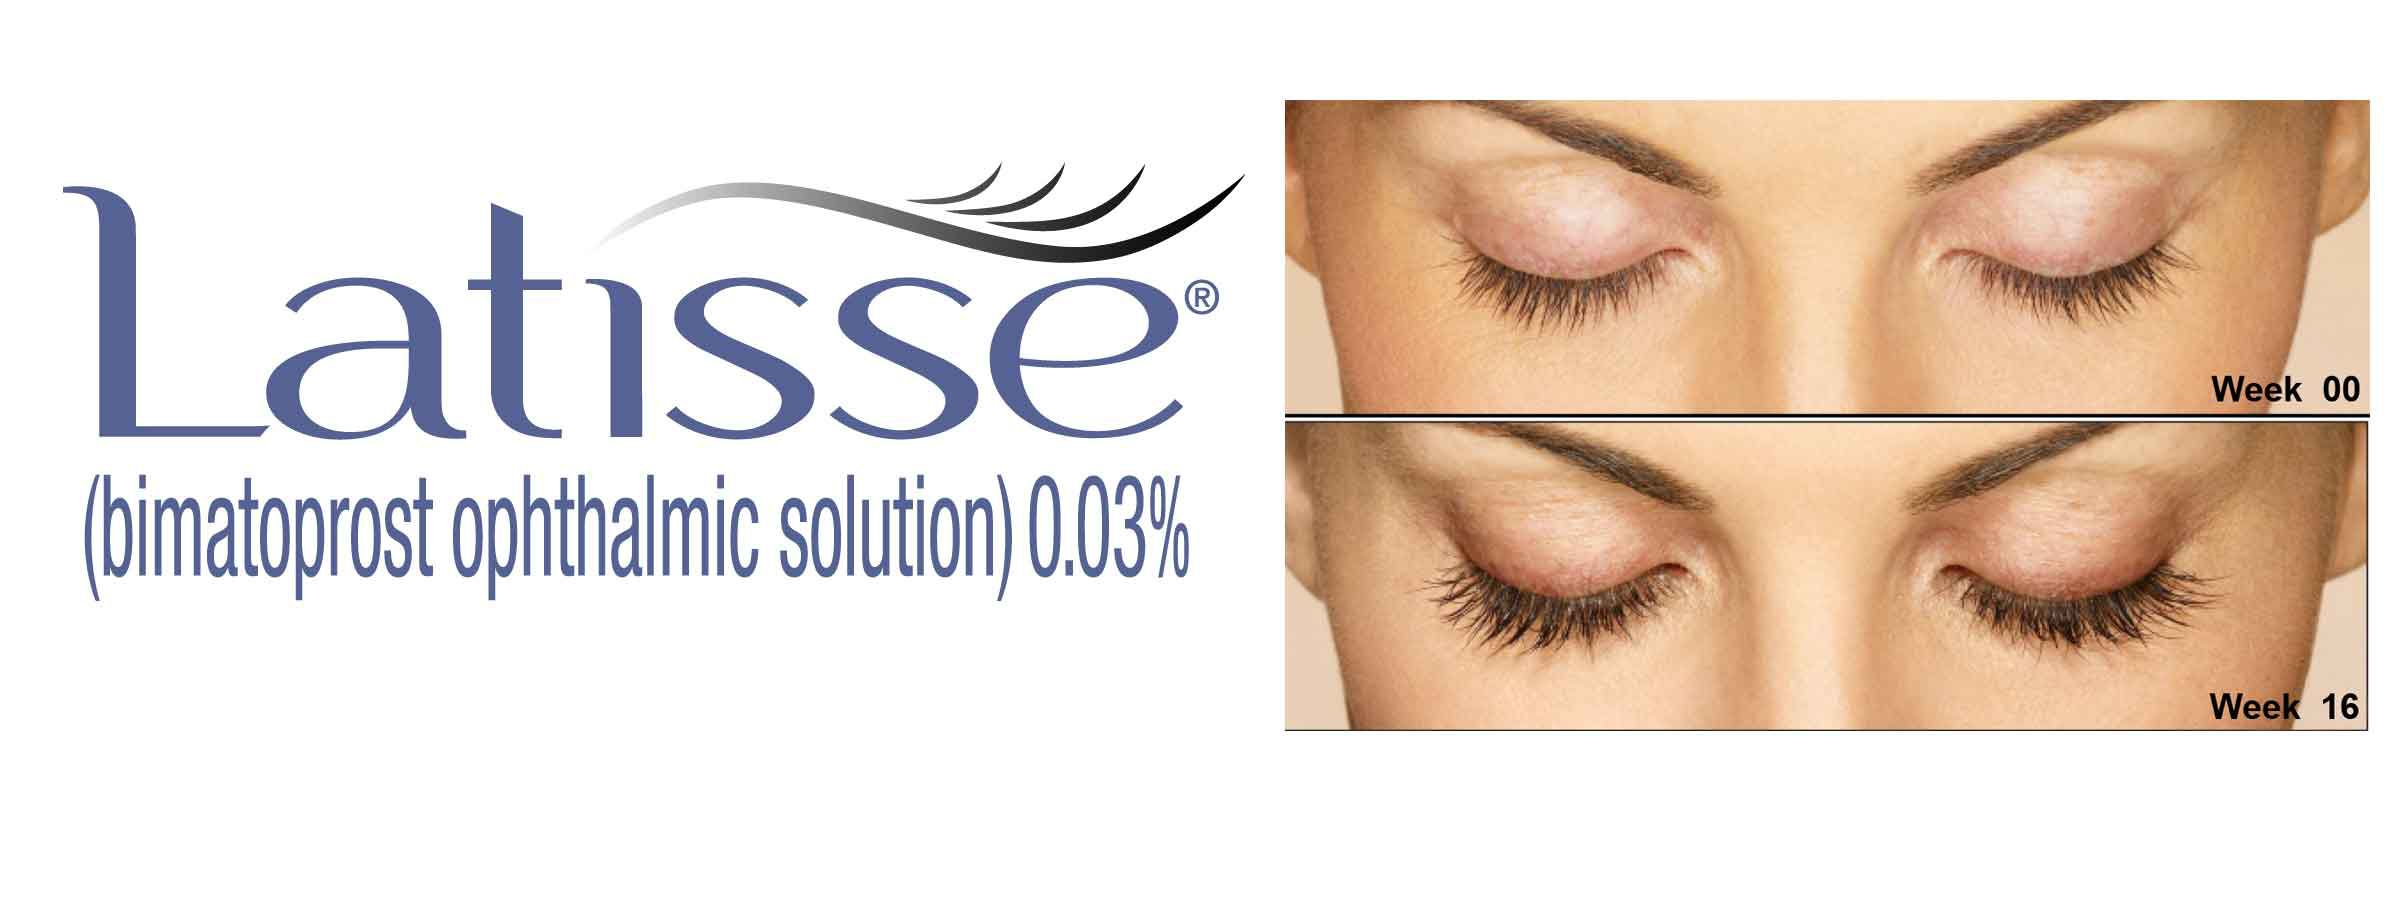 Should You Use Latisse For Chemotherapy Eyelash Loss